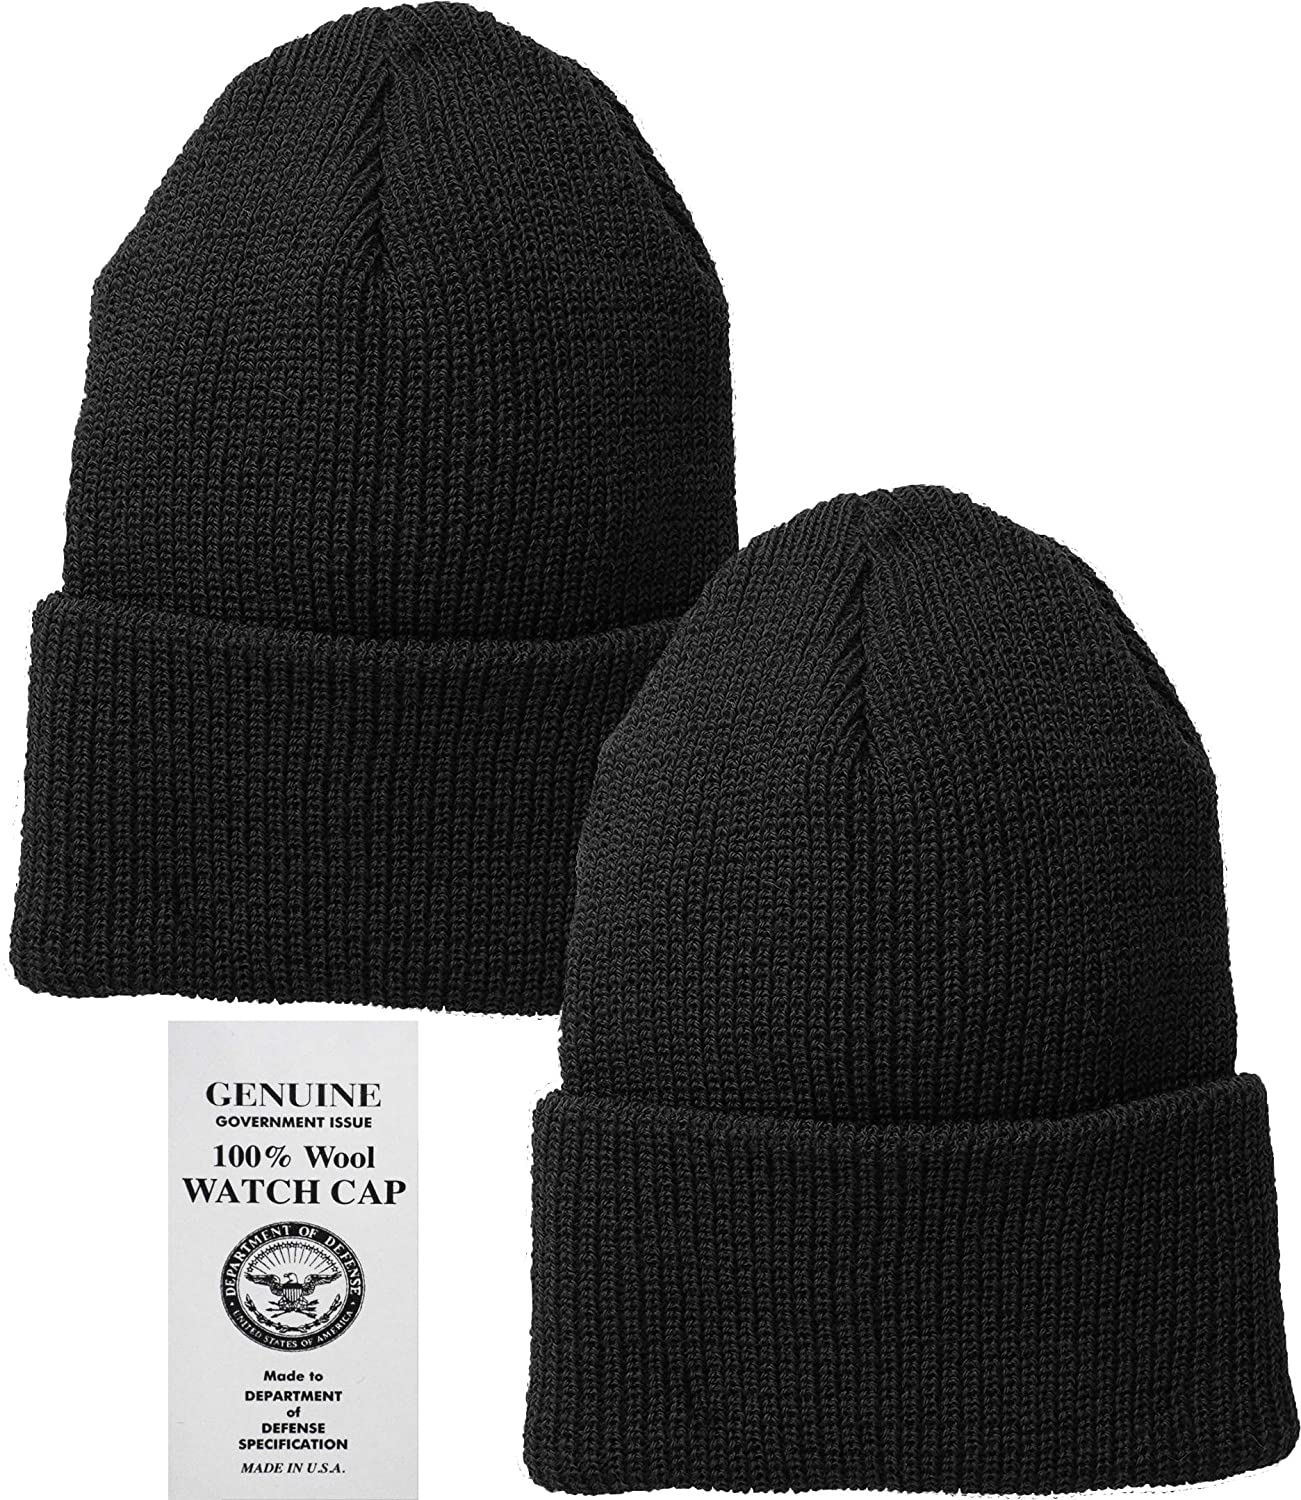 Amazon.com  Black Military Genuine GI US Department of Defense 100% Wool  Watch Cap (2-Pack)  Military Apparel Accessories  Clothing 98a03af8d0f